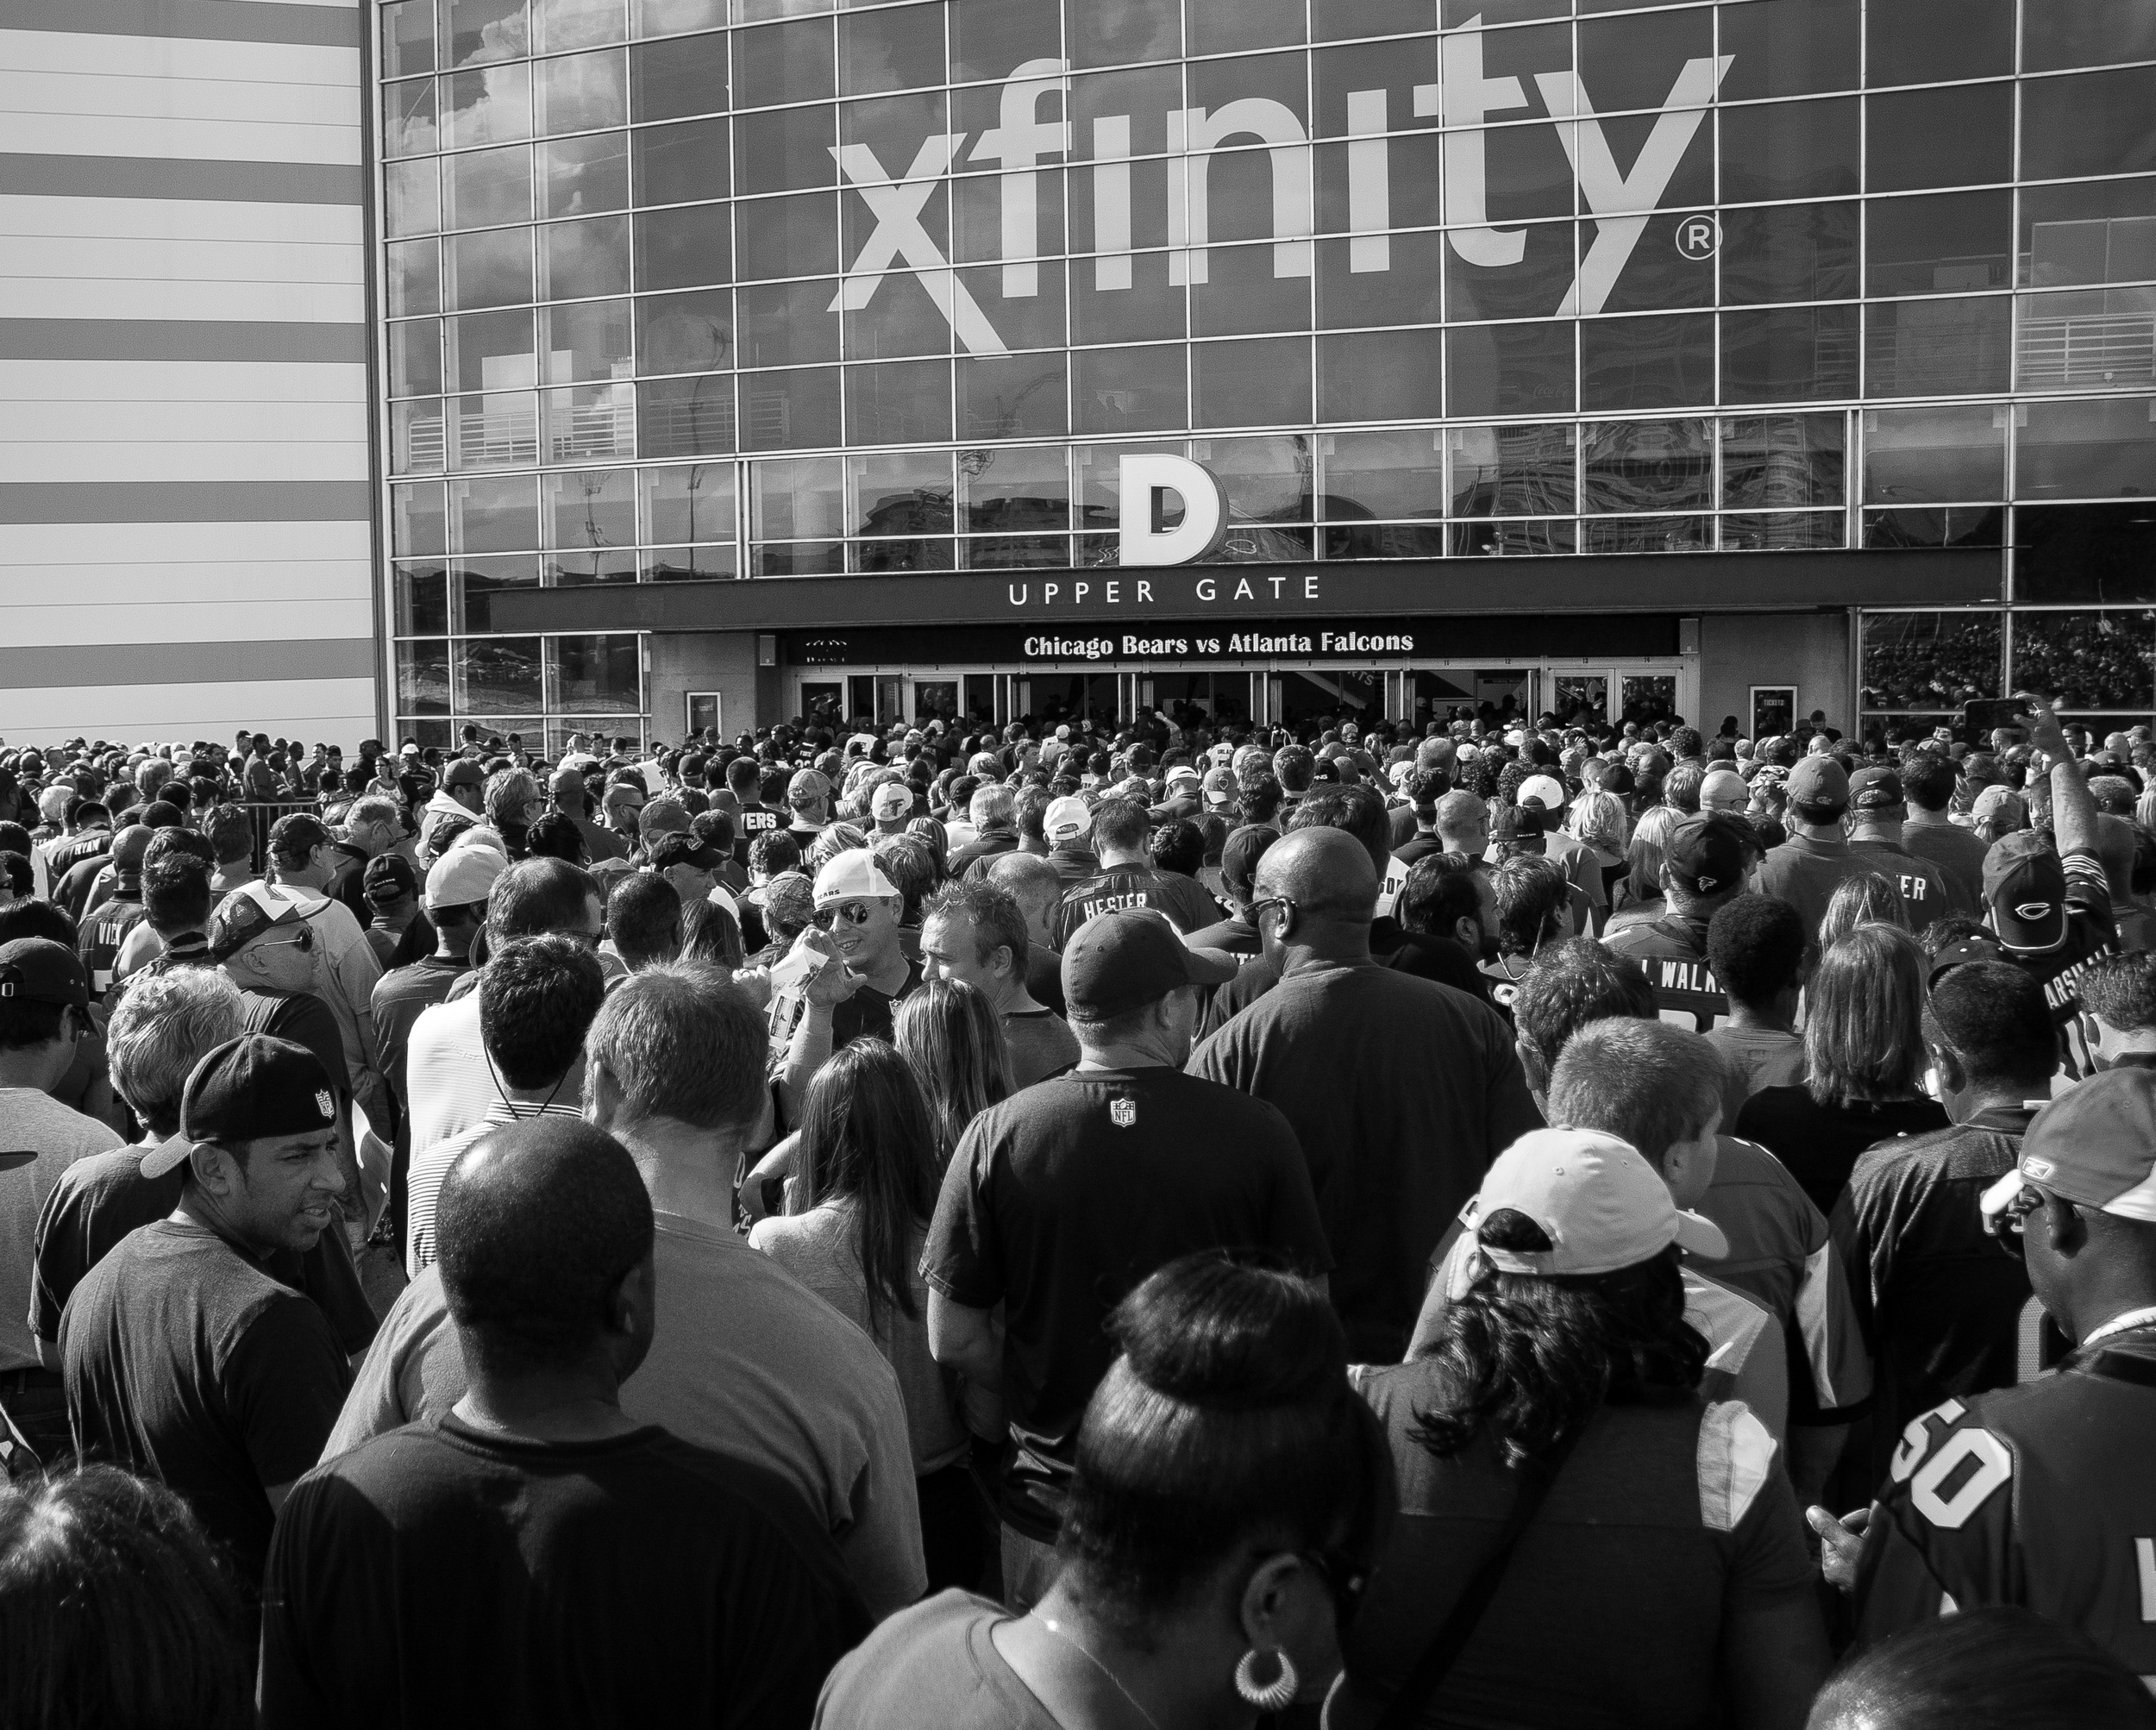 Fans in line waiting to enter the Georgia Dome to see Falcons vs Bears